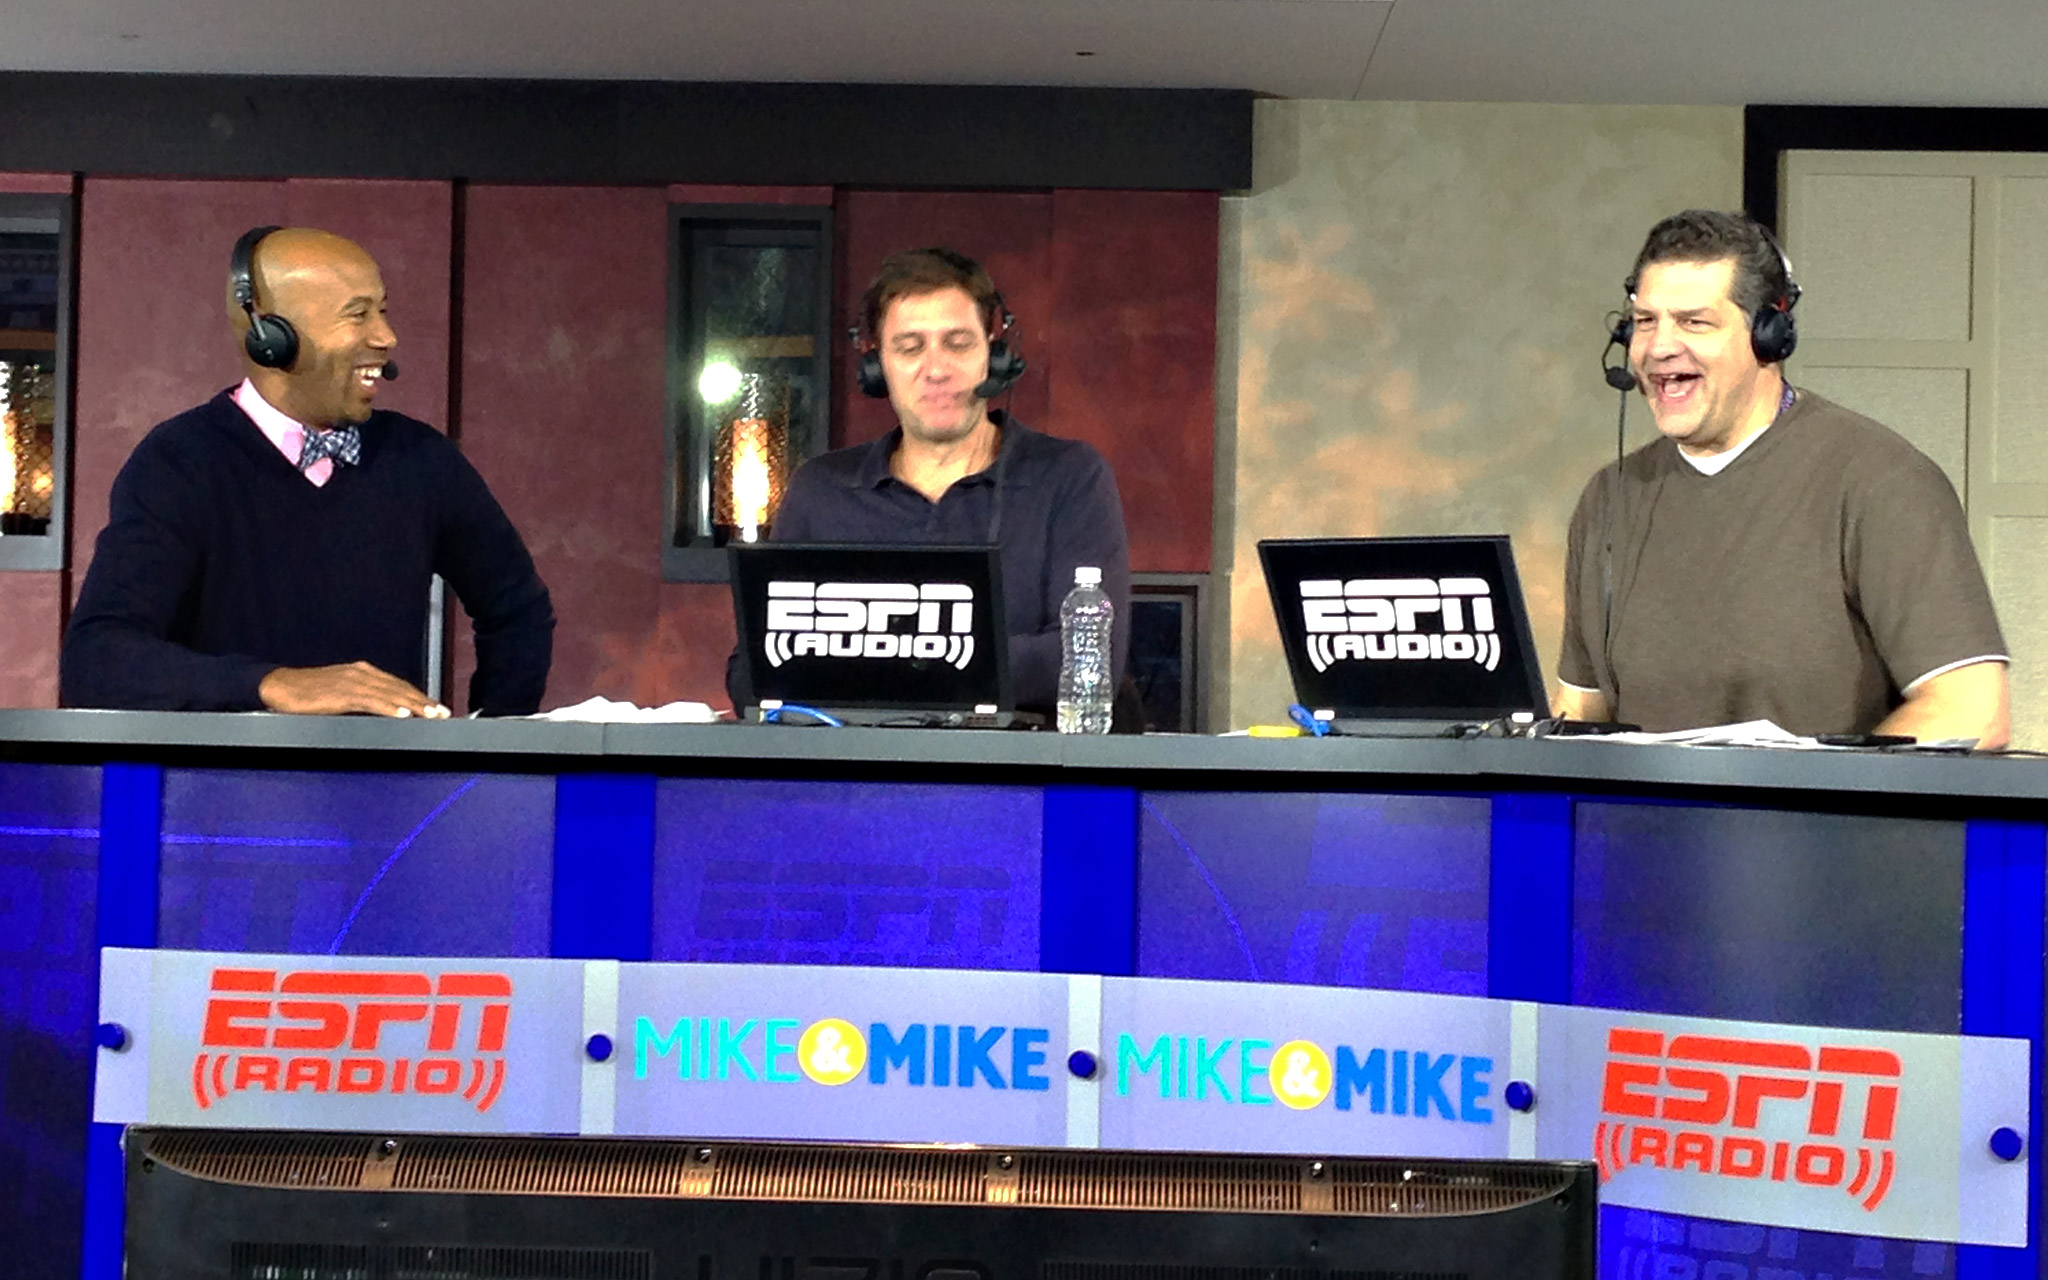 Mike & Mike at NBA All-Star Weekend